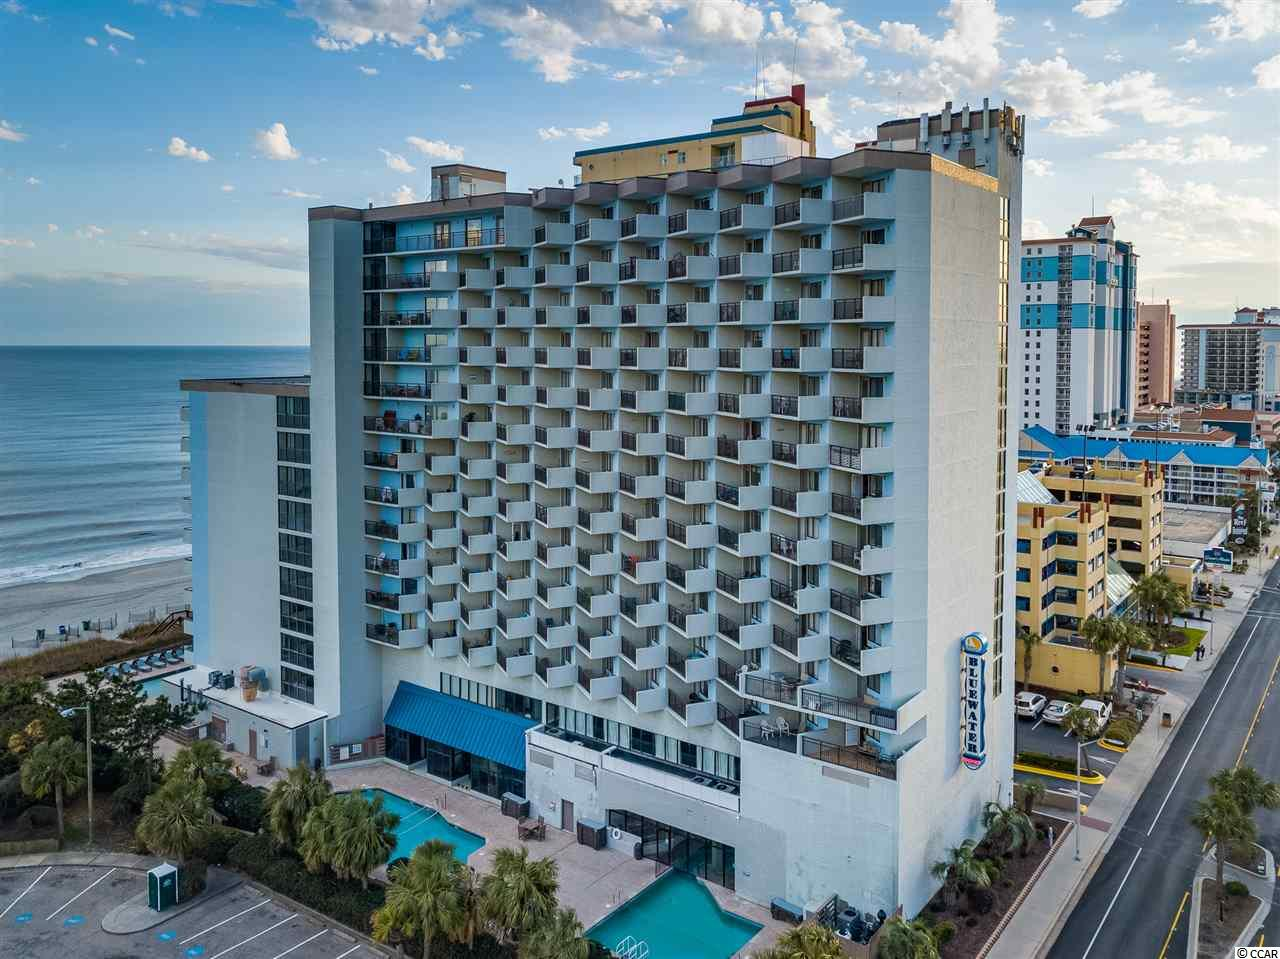 Fantastic One Bedroom Sleep 6 Ocean View Retreat at Bluewater Resort with 180 Degree Panoramic View, Beautifully Furnished and Decorated, A Must See Property! Fantastic Northeast Sunrise Views!  Large Flat Screen TV's in Bedroom and Living Room, Two Ottomans is Living Room That Open To Singe Beds. Kitchen Features, Stovetop, Oven and Microwave. Bluewater Resort Has Great Amenities Including Indoor and Outdoor Pools, Hot Tubs, Lazy River, Shuffleboard, Racquetball, Mako's Restaurant and Bar, Seasonal Tiki Bar and Convenient Laundromat HOA Also Includes Building Insurance and Electric in the Unit. Great Beach Front Investment Property, just minutes to all our beautiful sandy beaches, public piers, marinas, boat landings, public parks and restaurant/shops. Conveniently located in the vicinity of everything Myrtle Beach has to offer including: Myrtle Beach International Airport, The Market Common, Coastal Grande Mall, Tanger Outlet Centers, Over 80 golf courses, 5 major hospitals and 2 colleges.